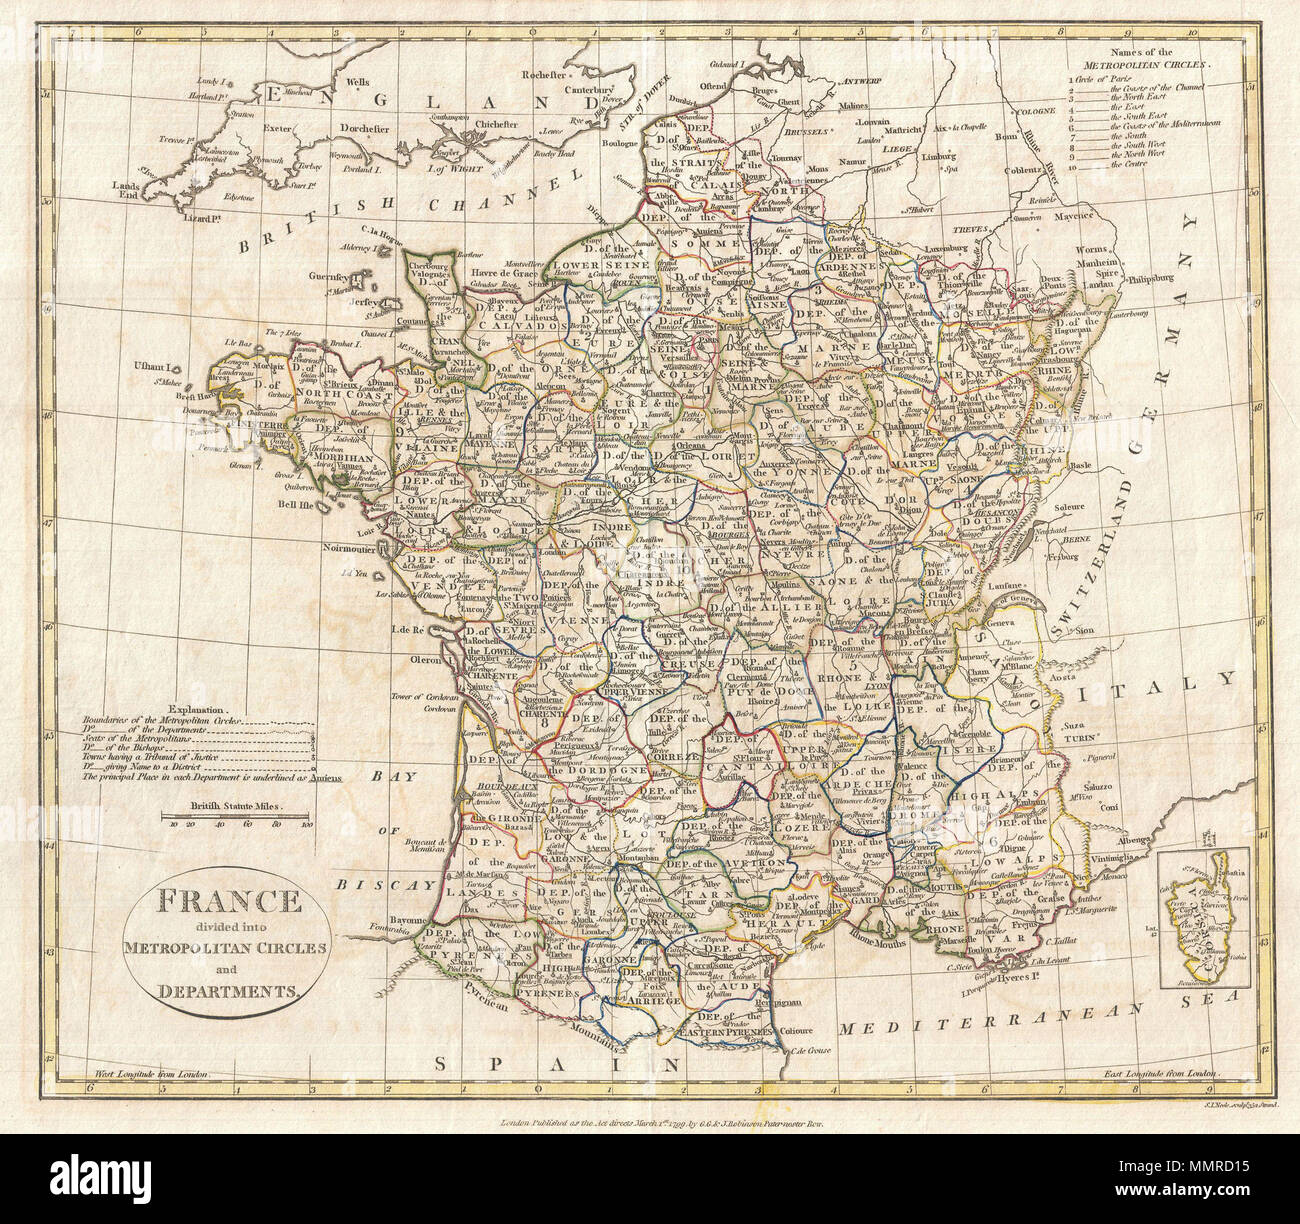 English Map Of France.English A Fine 1799 Map Of France Divided Into Metropolitan Circles